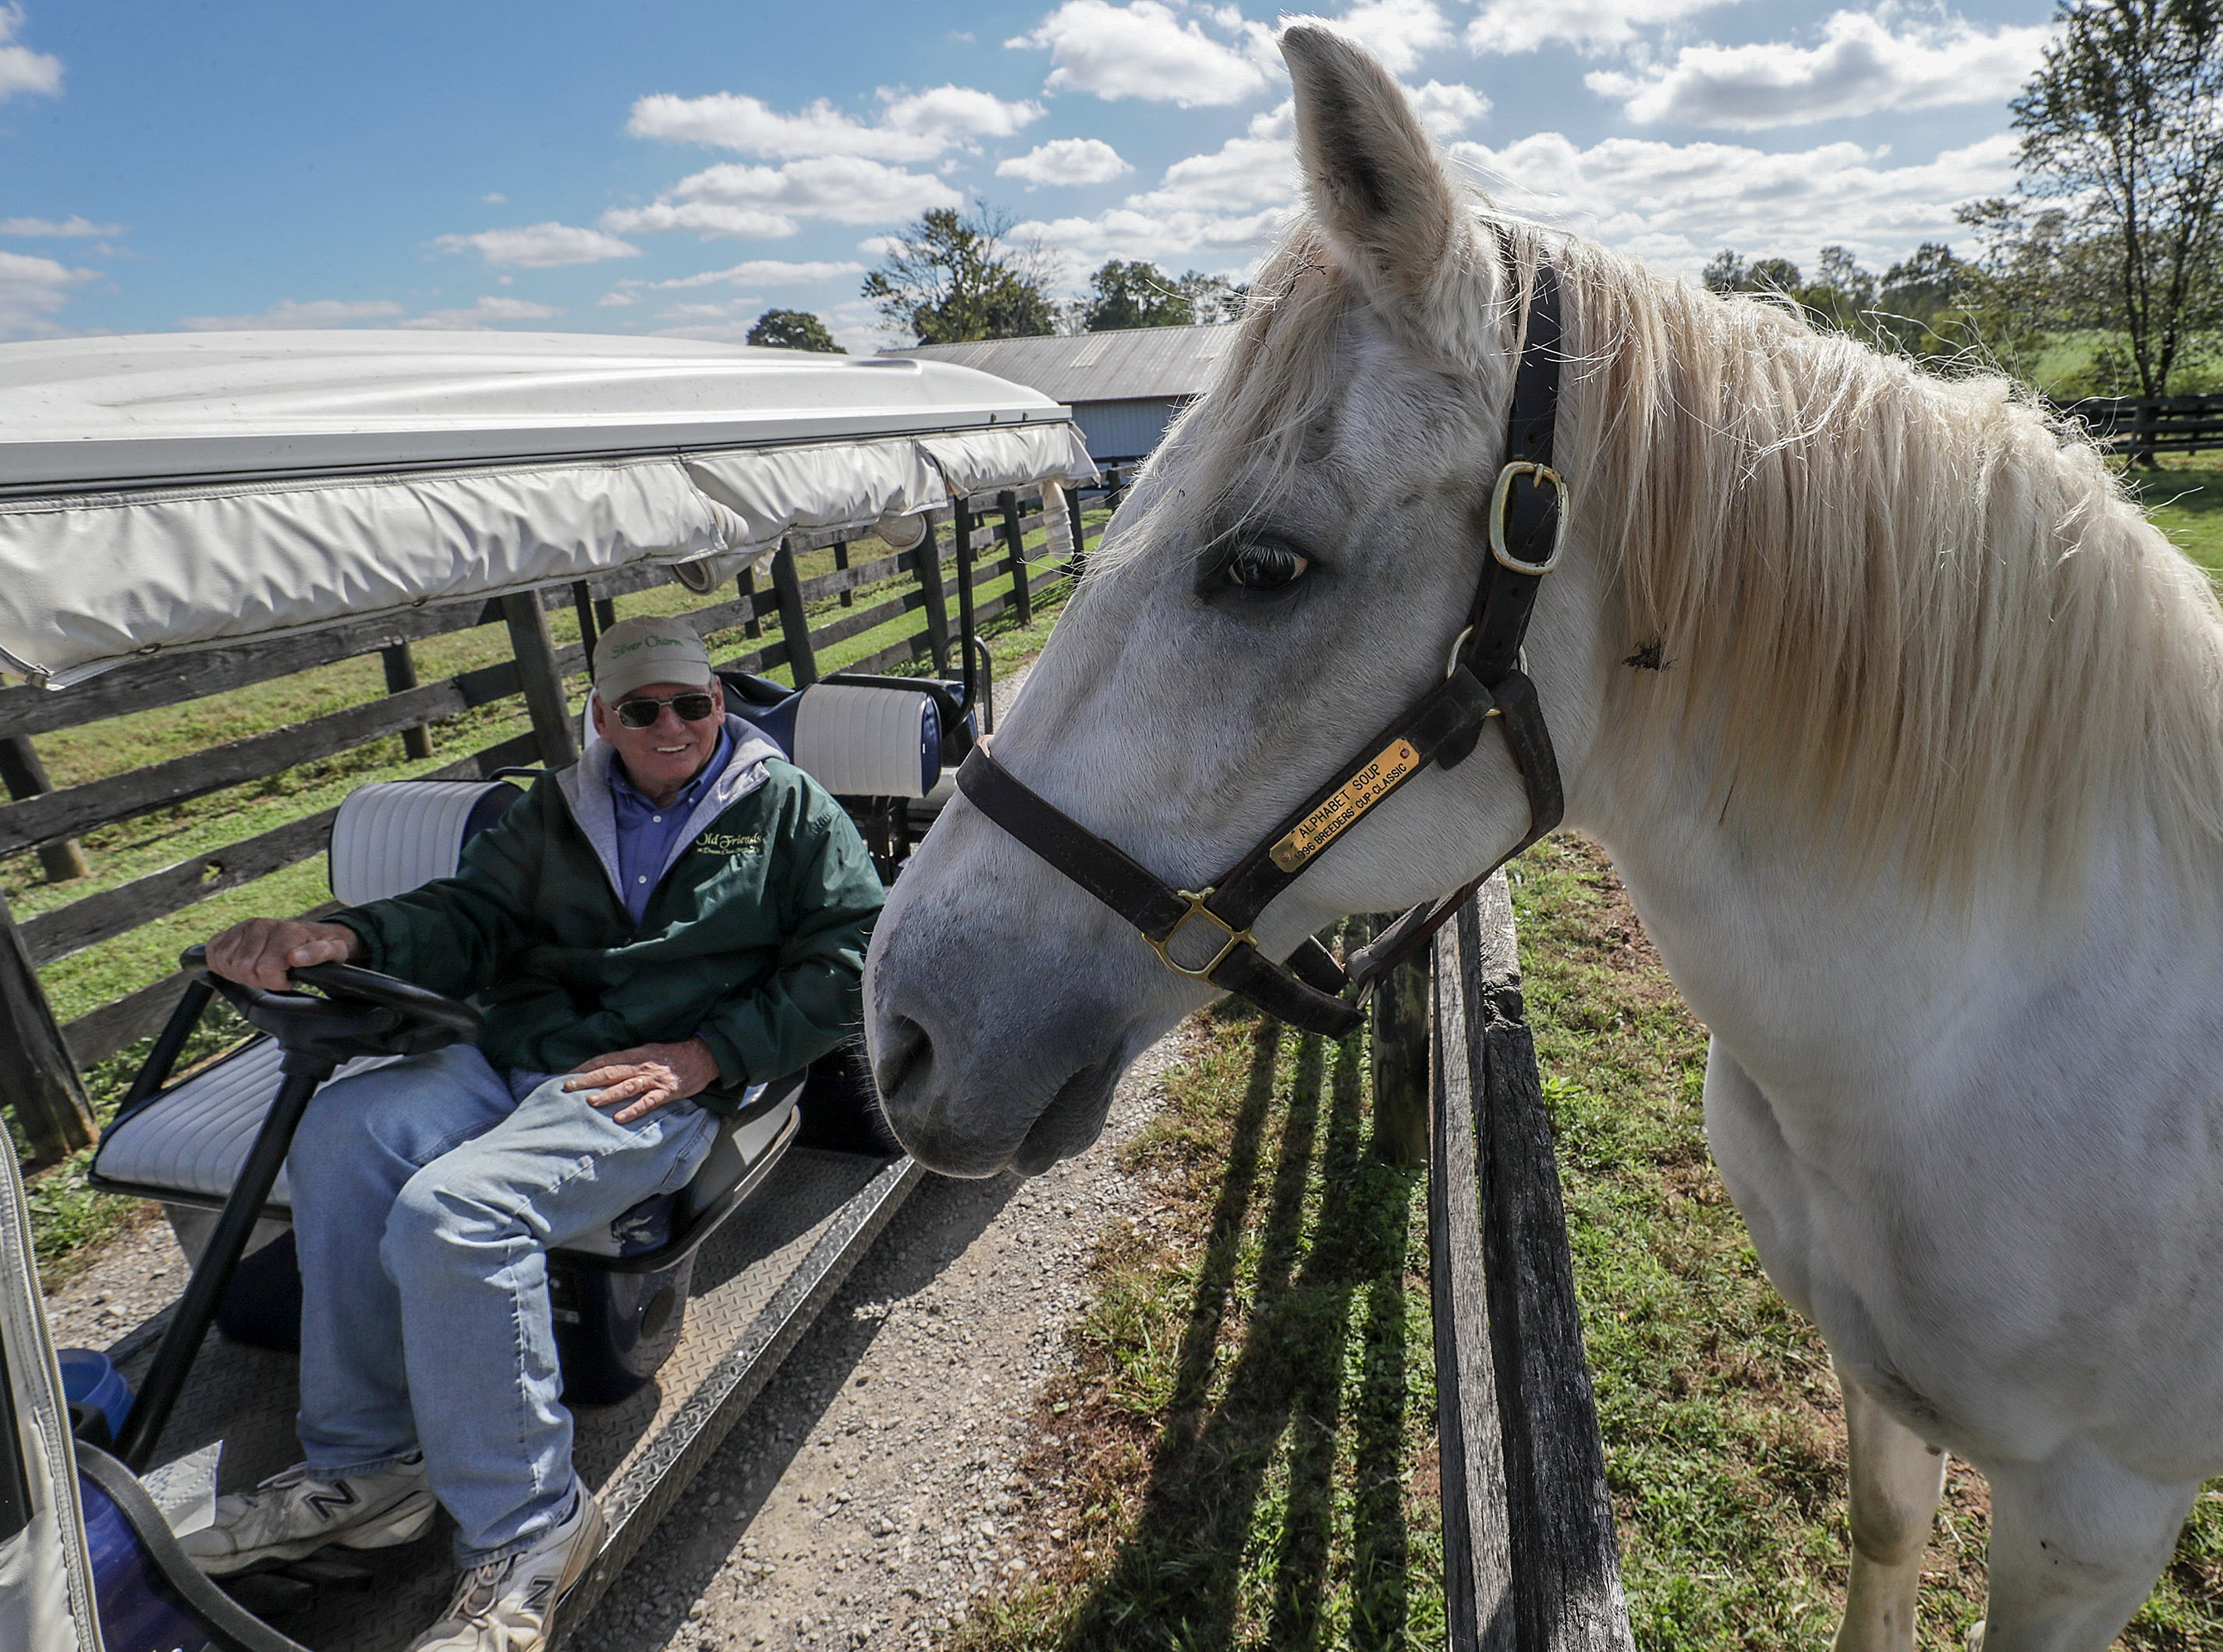 Alphabet Soup won the Breeders Cup Classic in 1996 and hangs out with Michael Blowen, founder of Old Friends Farm. October 11, 2018